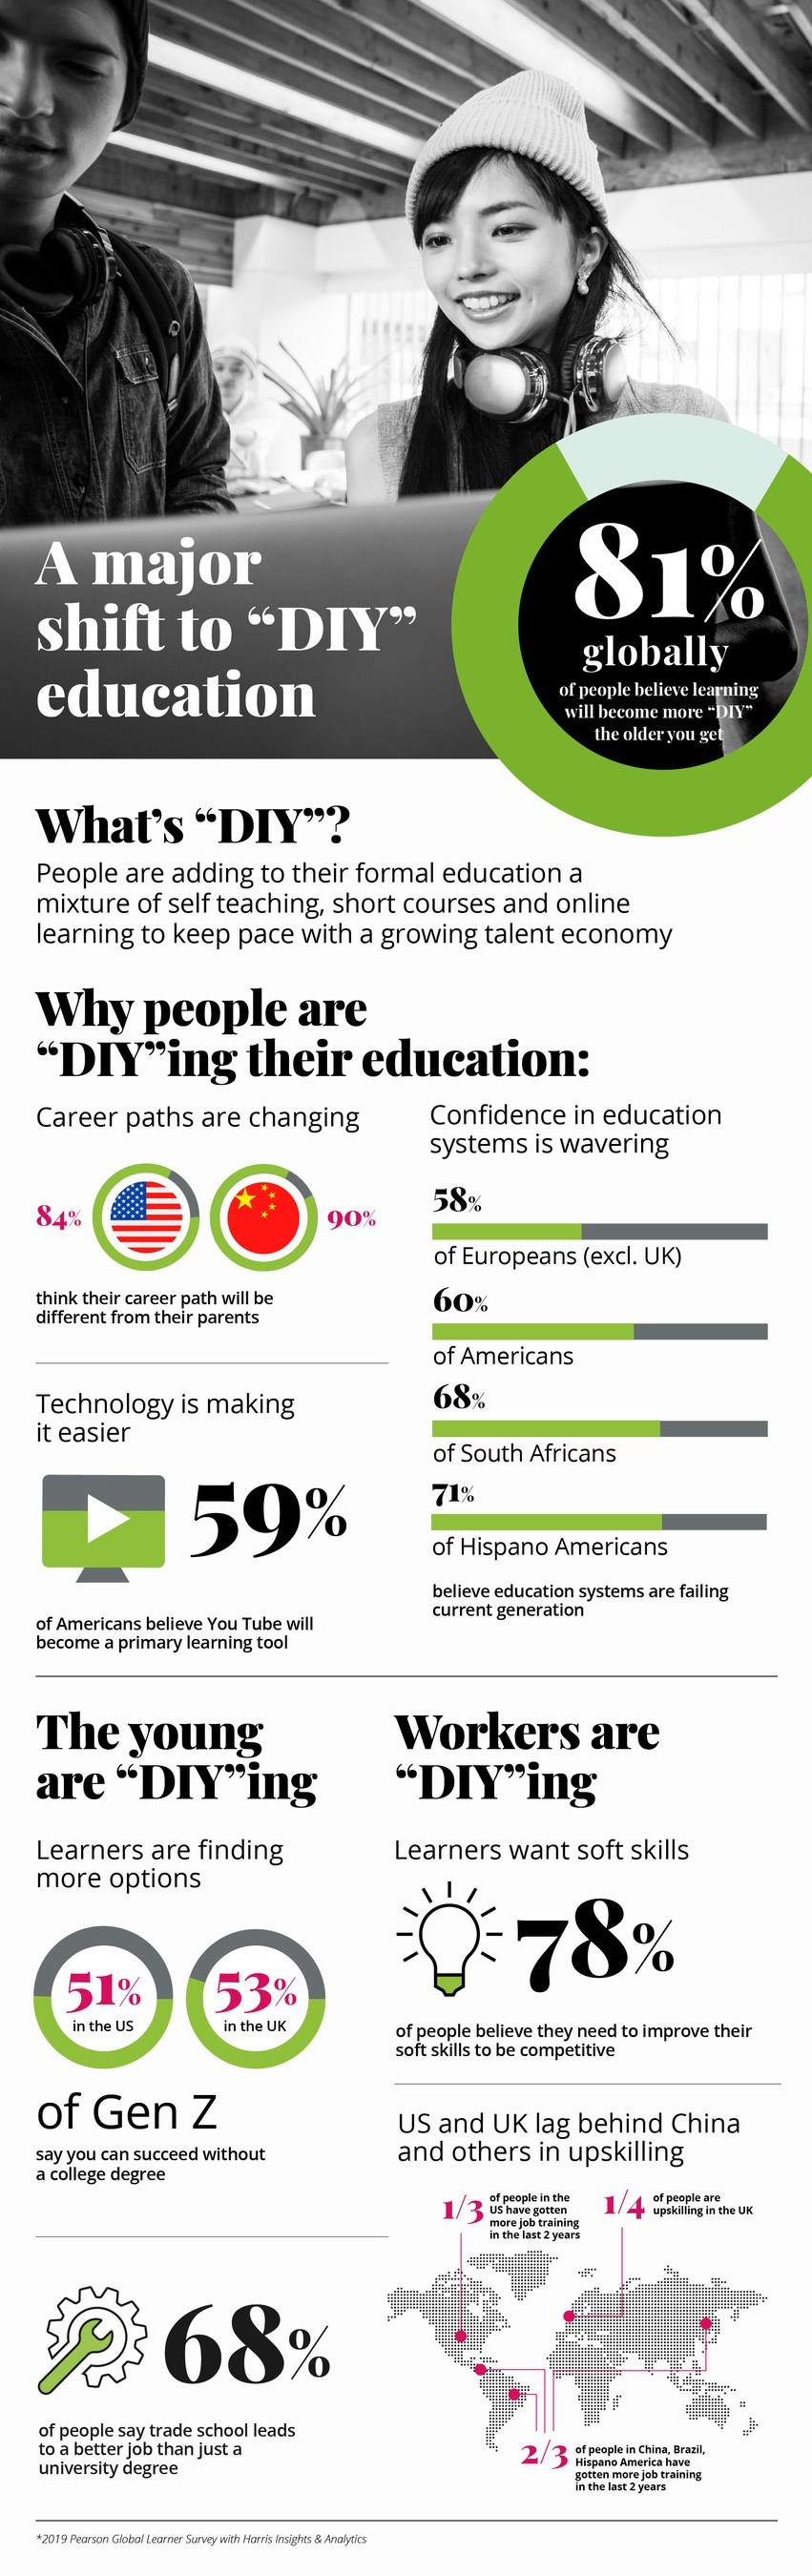 Pearson's Global Learner Survey is a first of its kind study letting all hear the collective voice of 11,000 learners in 19 countries. It's loud and clear: learners are taking charge of their education.